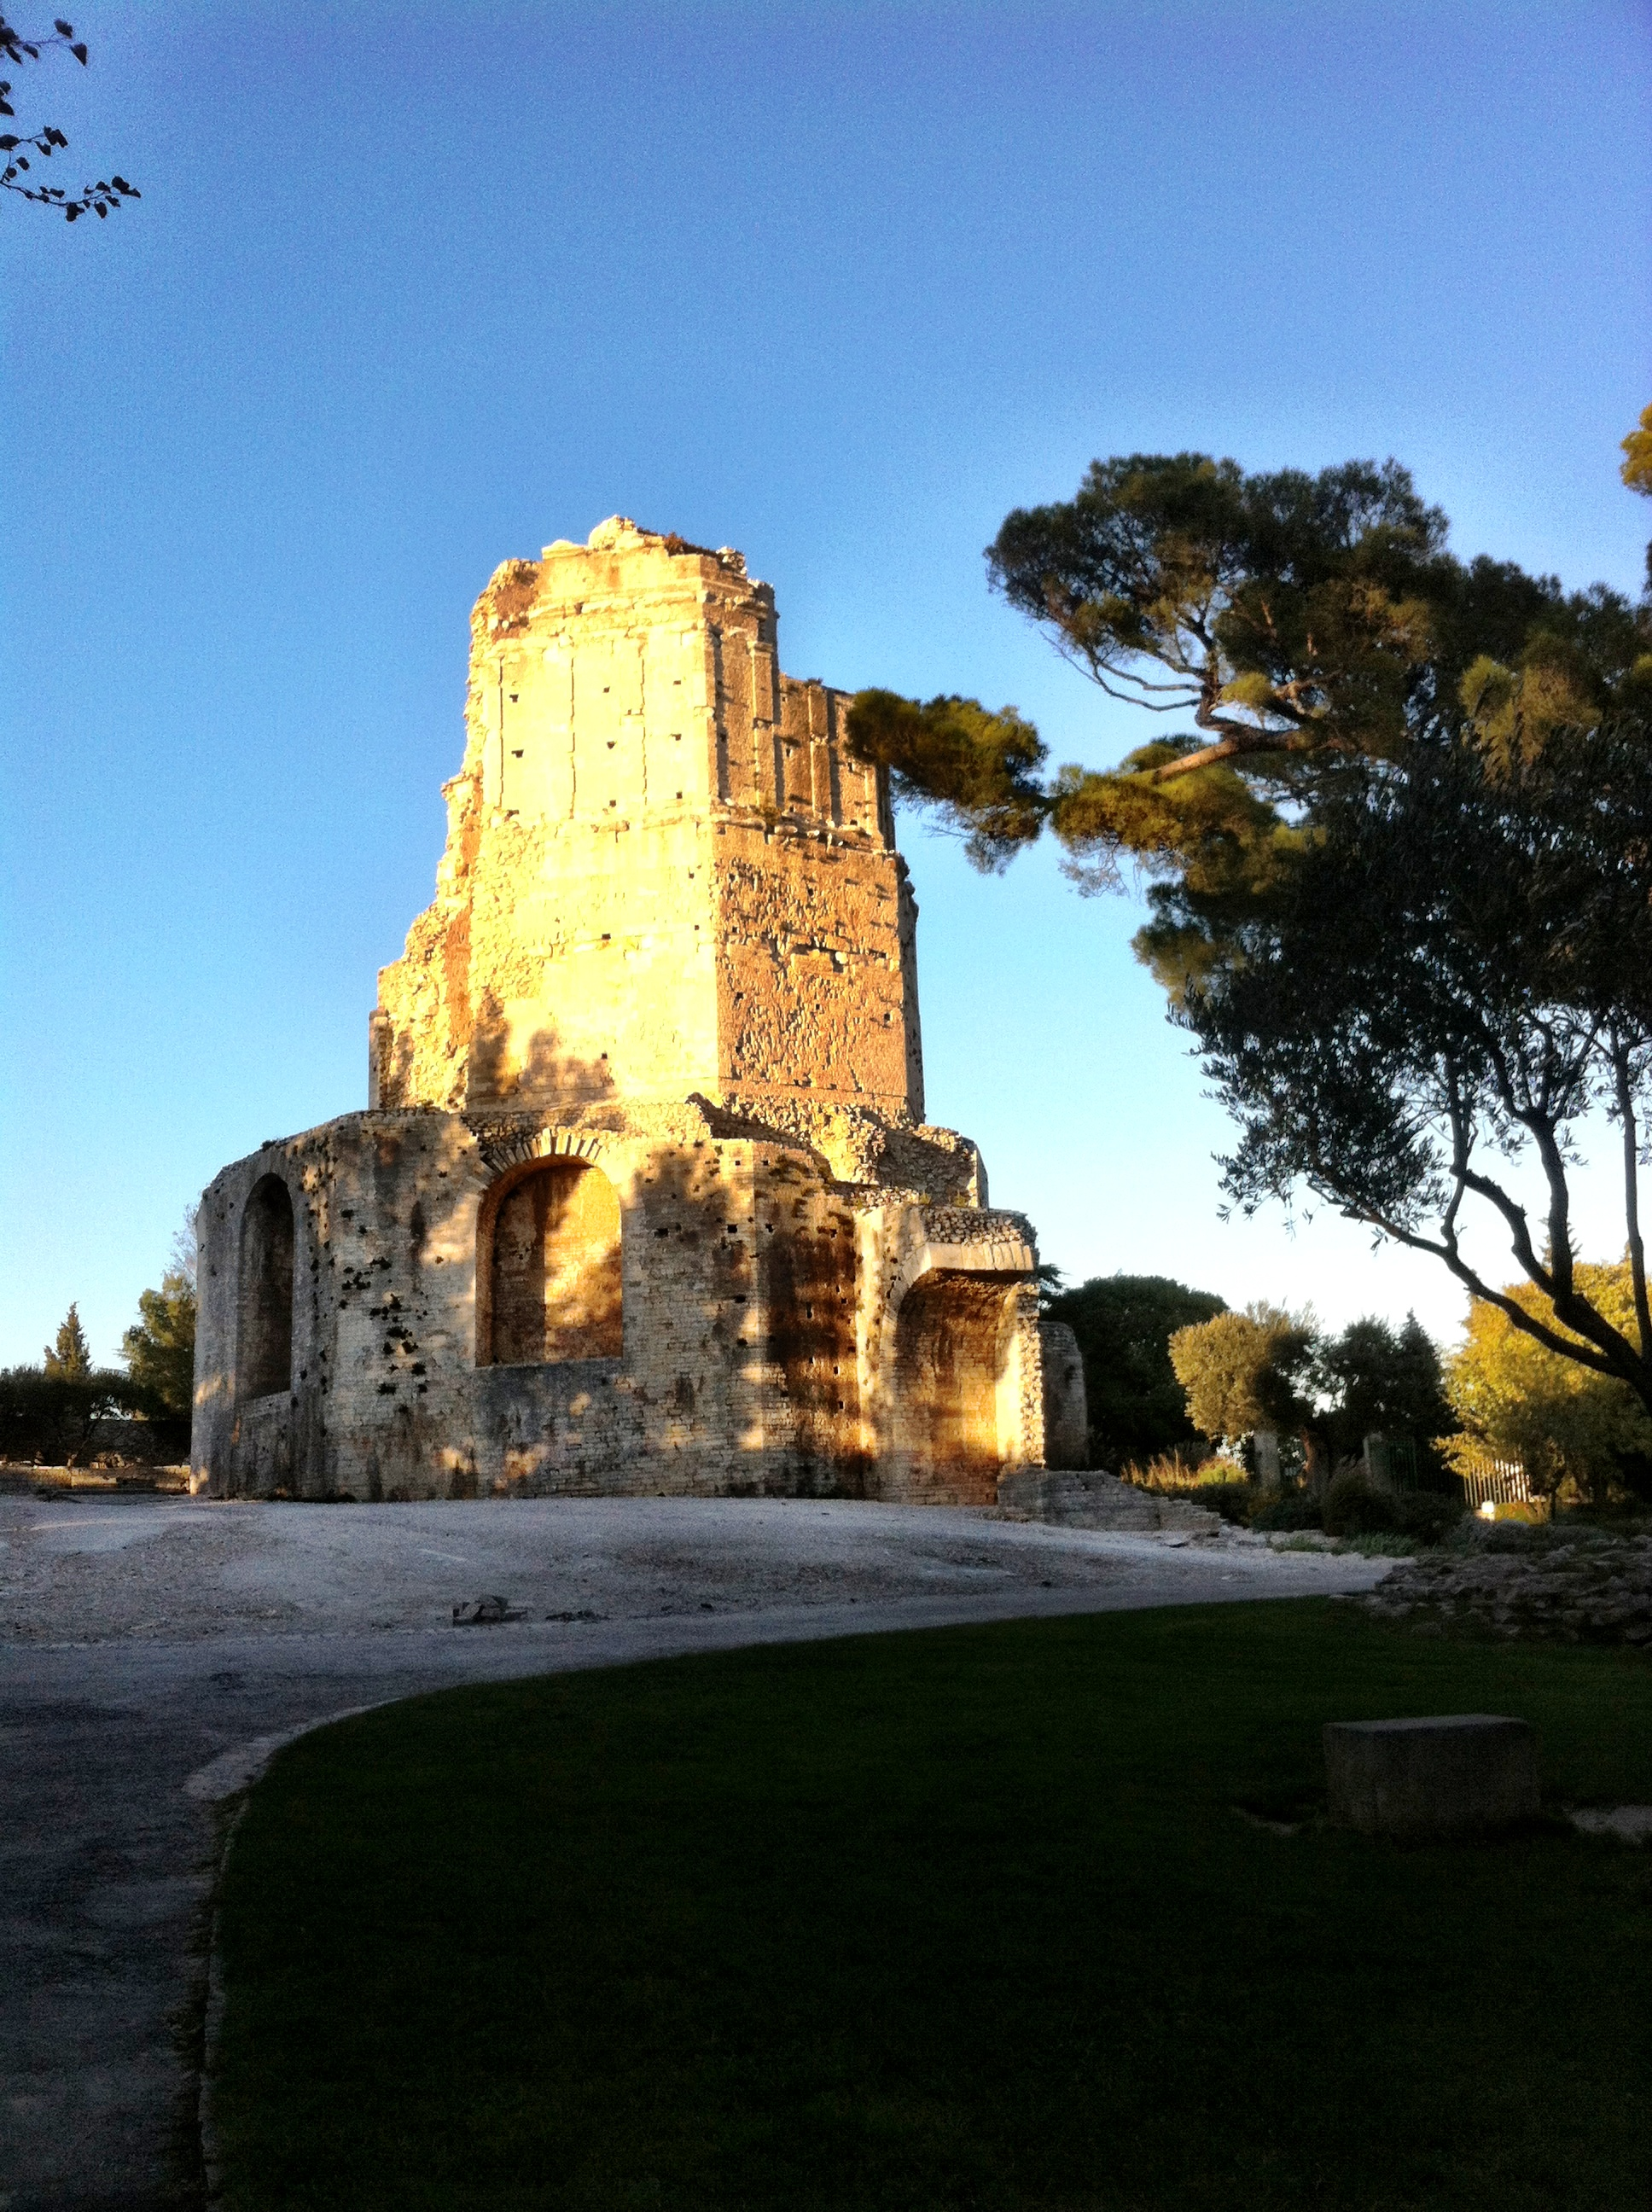 Tour Magne in Nimes